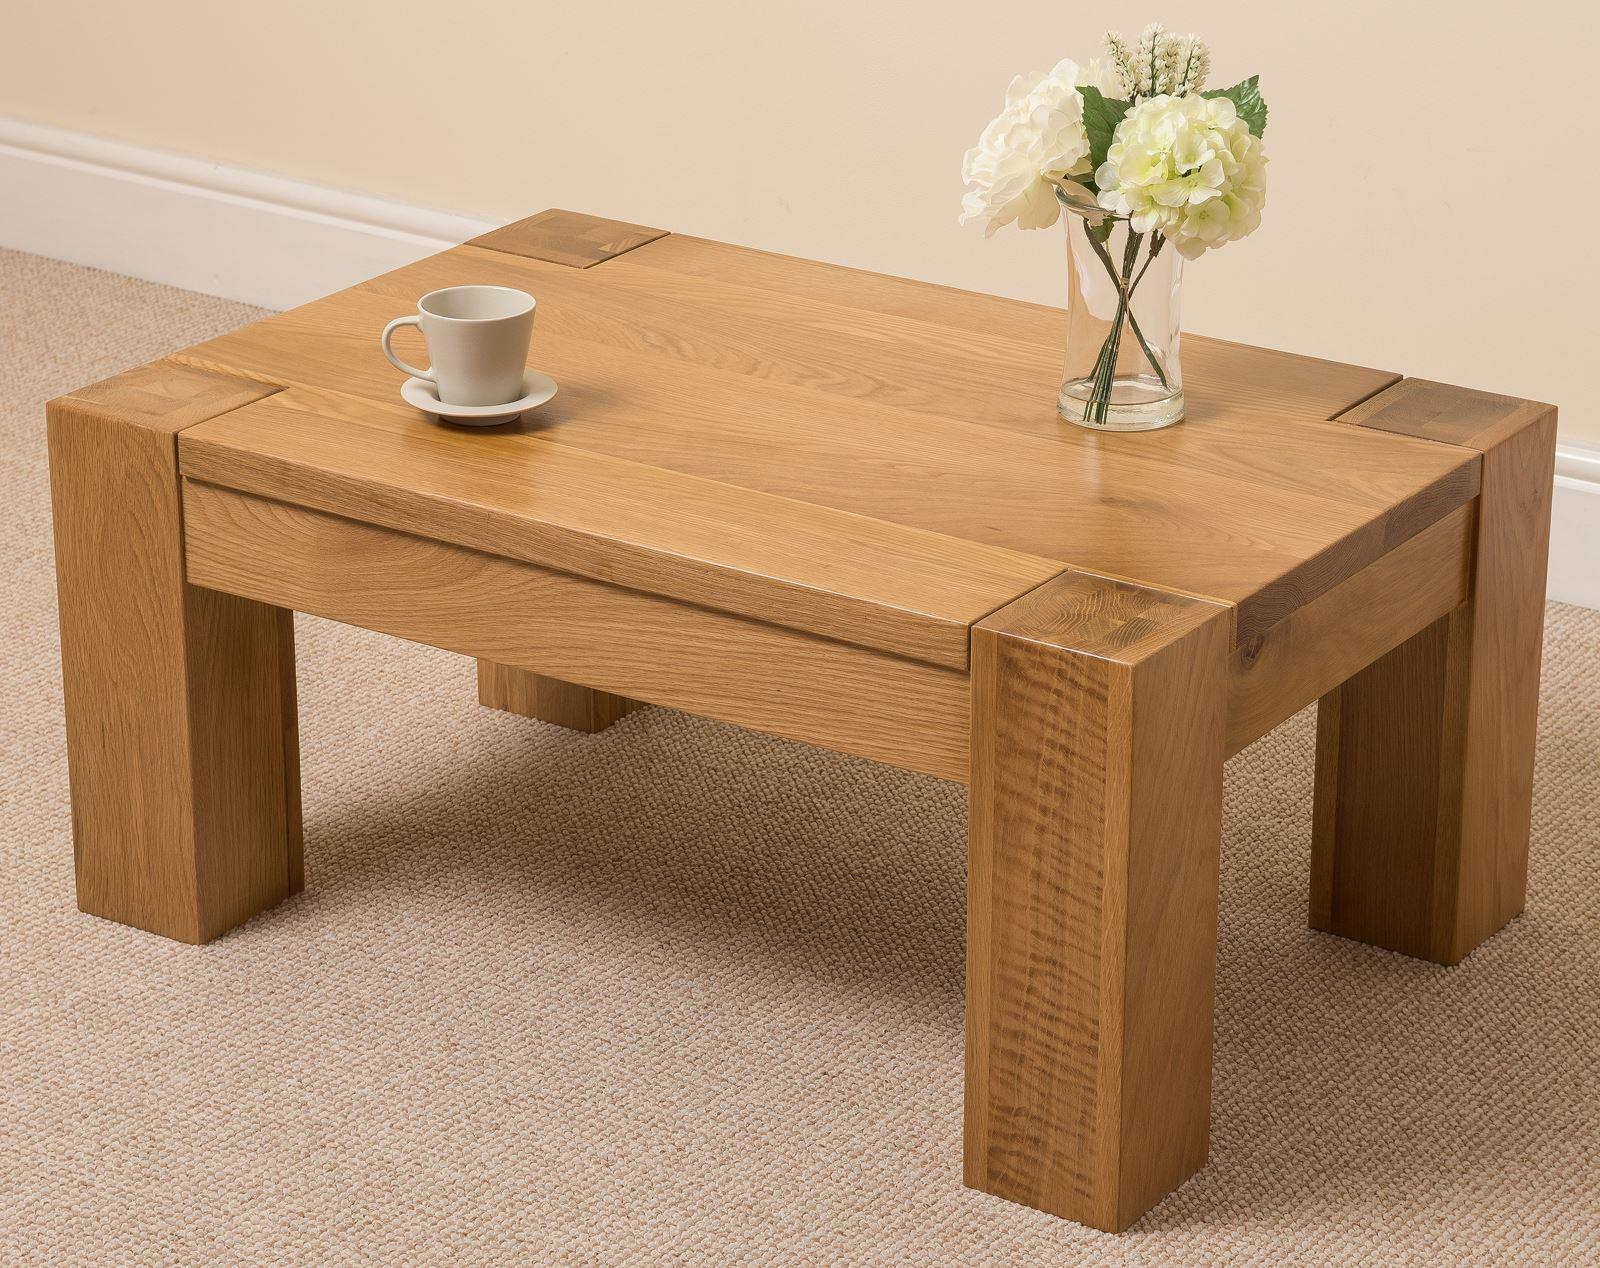 Kuba Solid Oak Coffee Table Furniture King